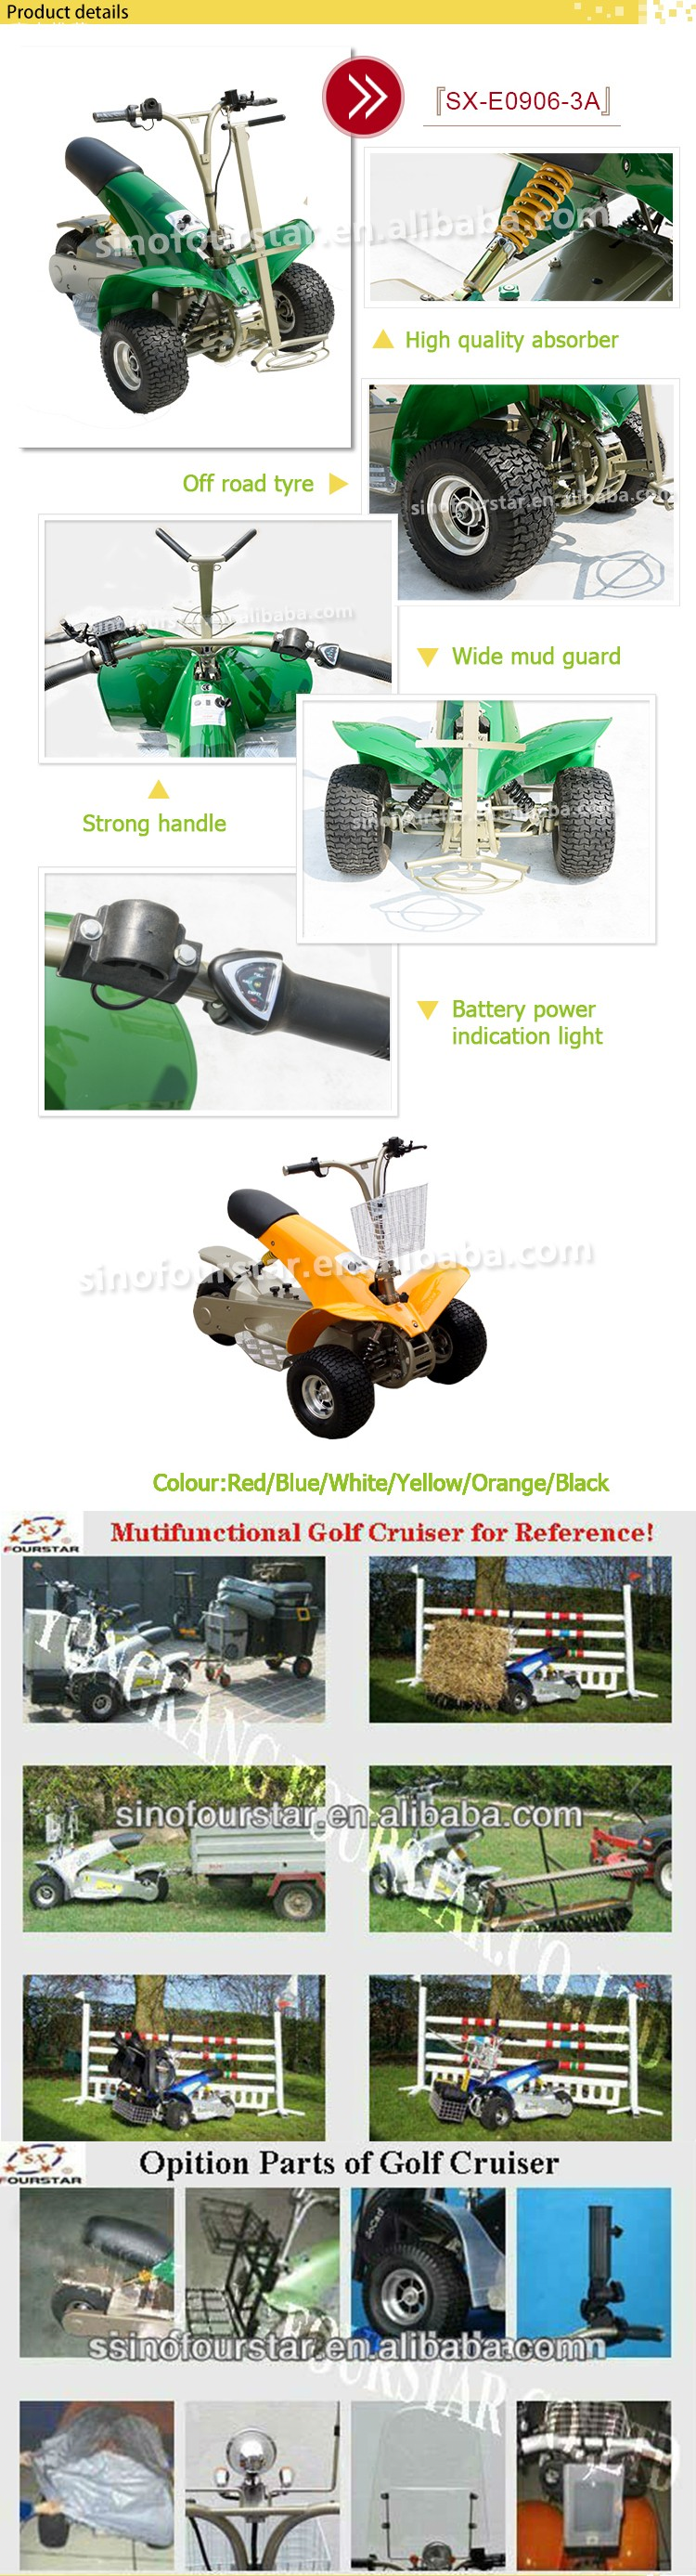 HTB1w3MbQXXXXXXYXpXXq6xXFXXXn electric golf carts golf buggy parts 1000w electric fourstar golf fourstar golf cruiser wiring diagram at mifinder.co